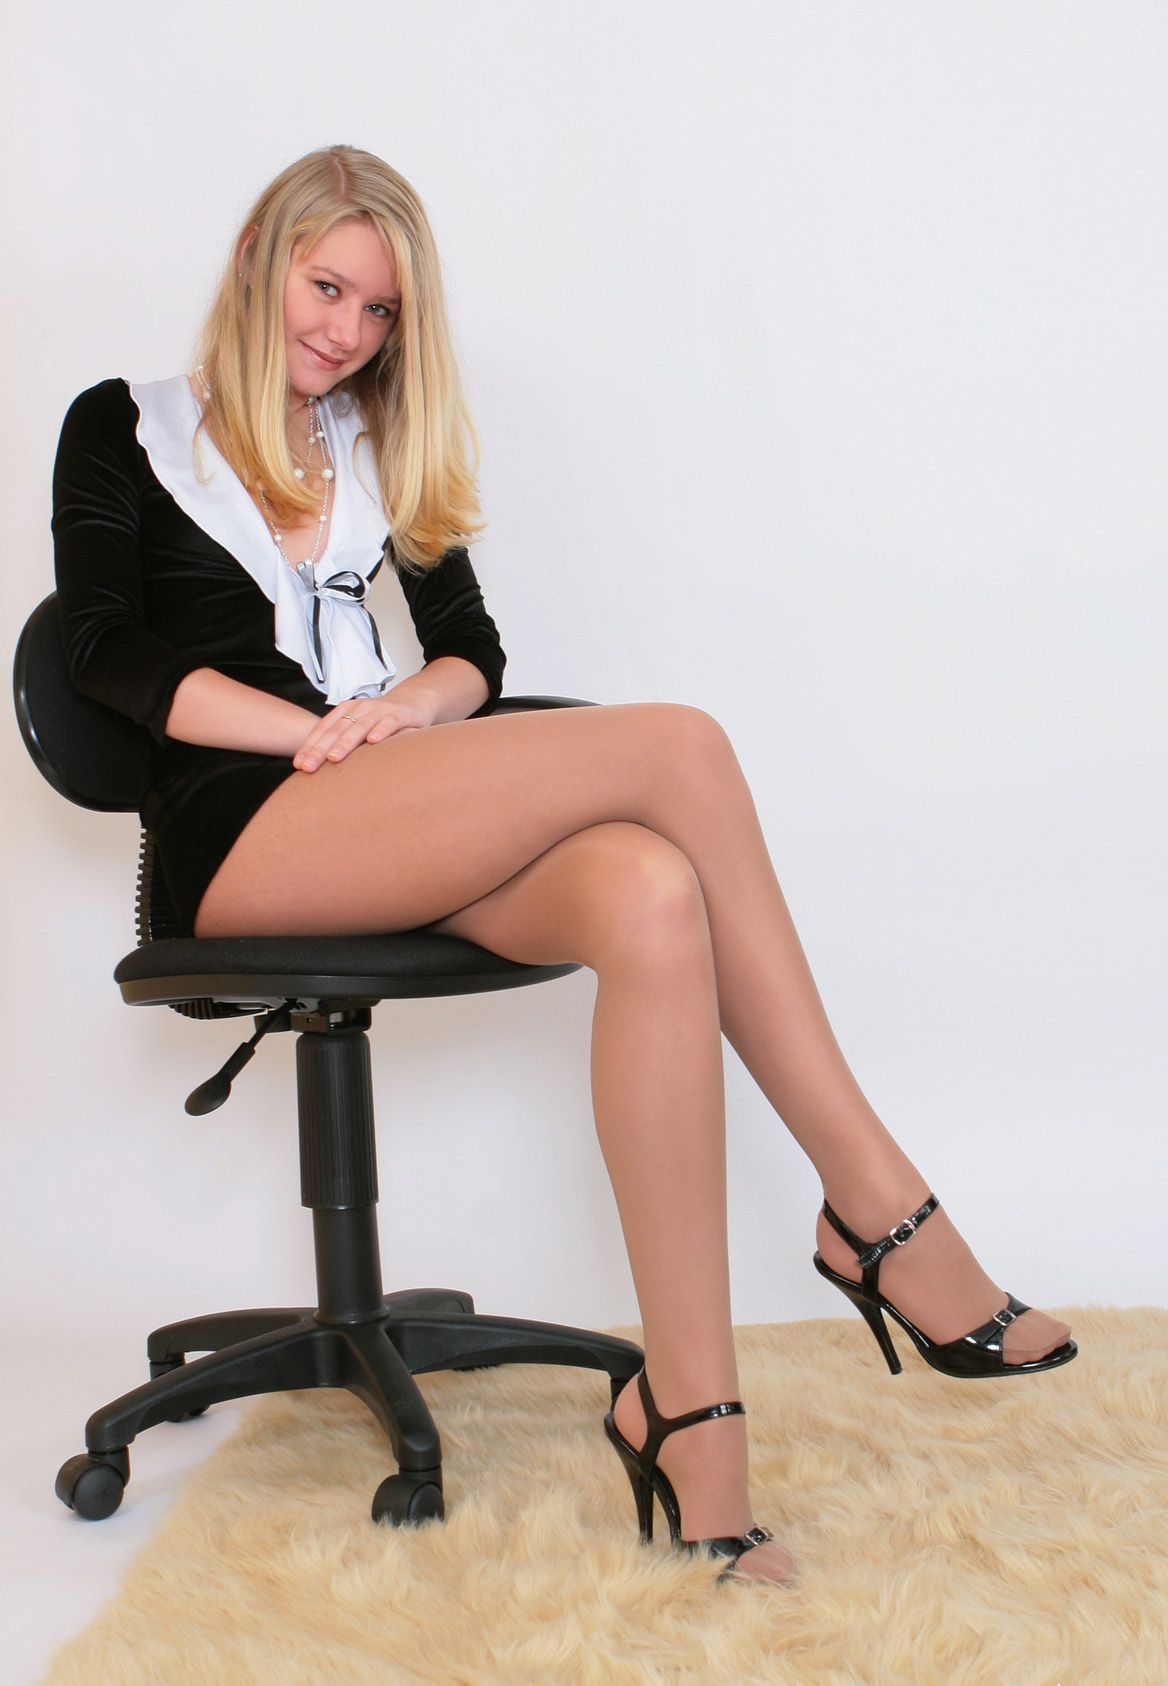 nylons Sexy beine in